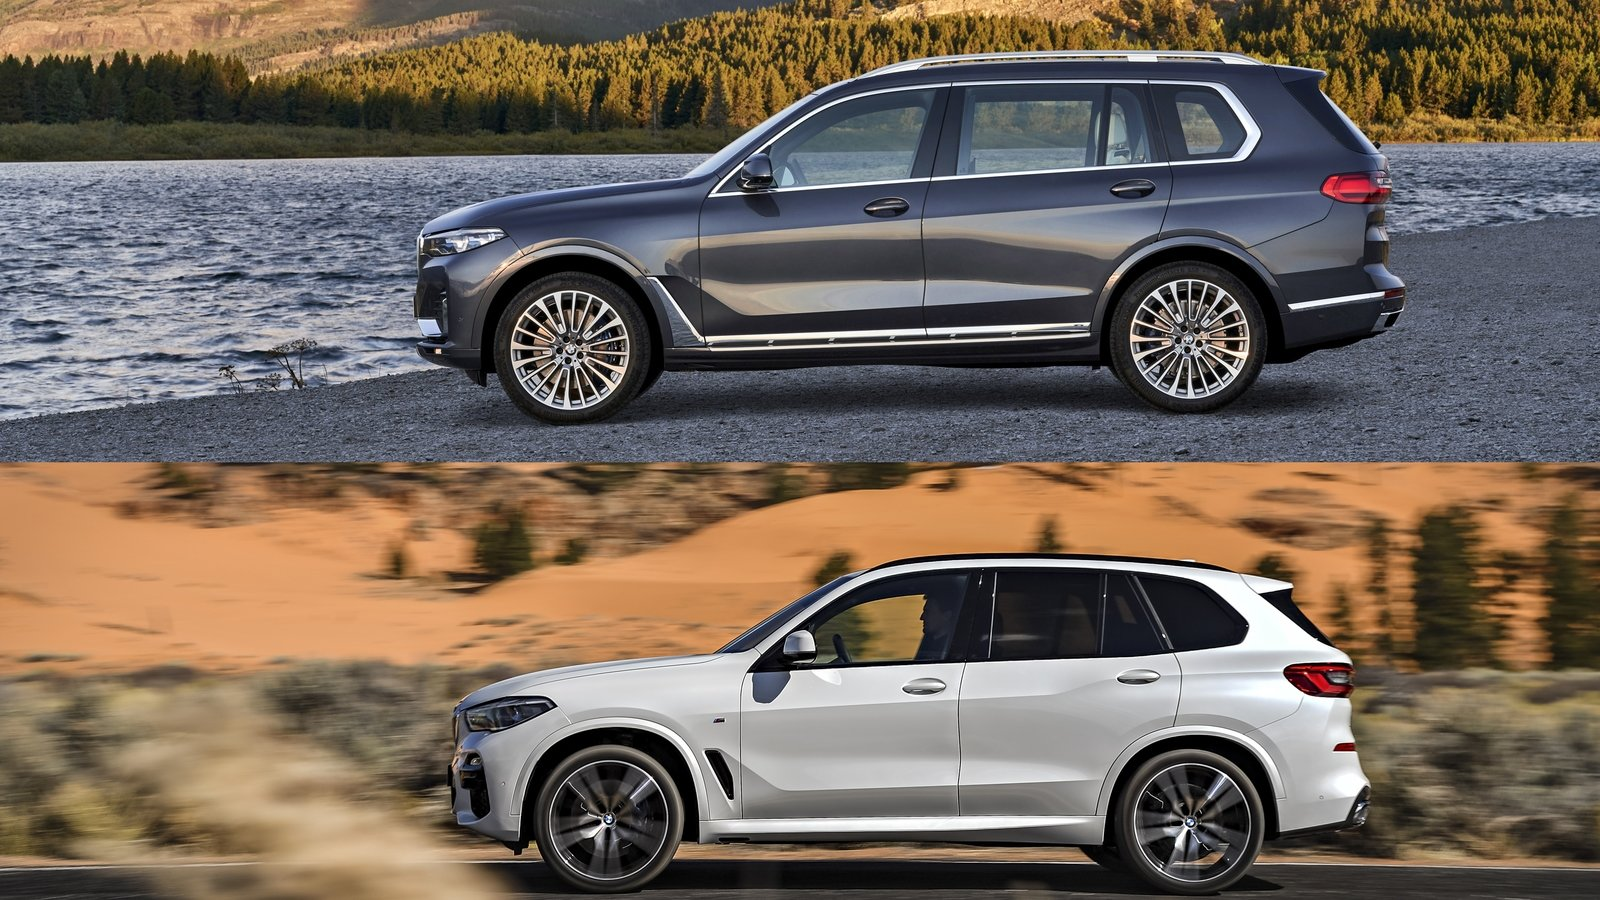 Is The 2019 Bmw X7 Too Similar To The Bmw X5 Top Speed